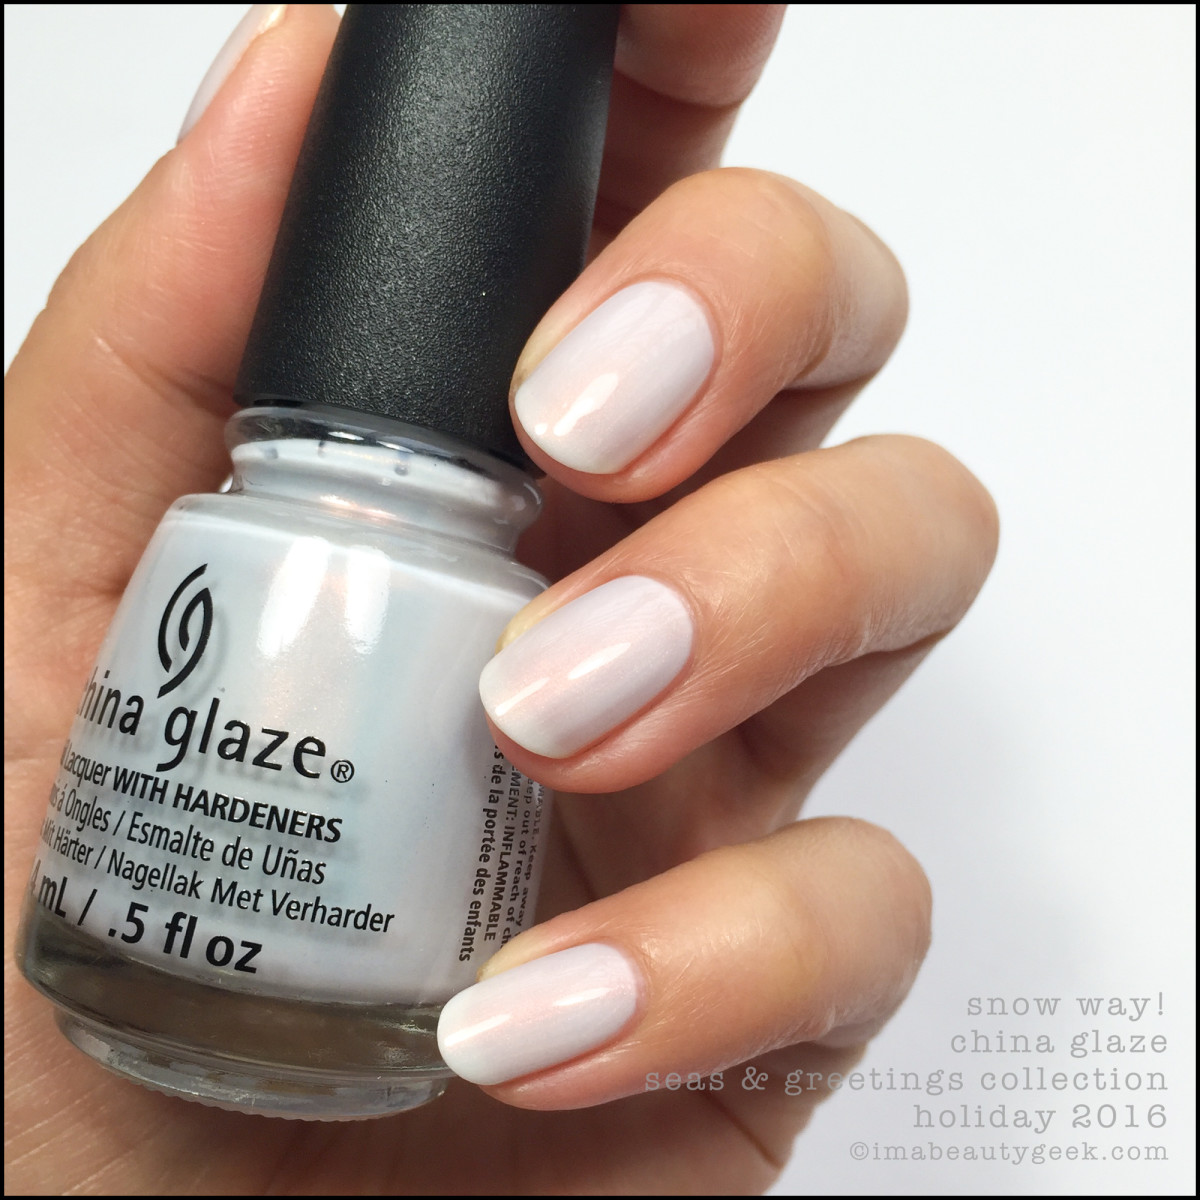 China Glaze Snow Way Holiday 2016_China Glaze Seas and Greetings Collection Swatches Review 2